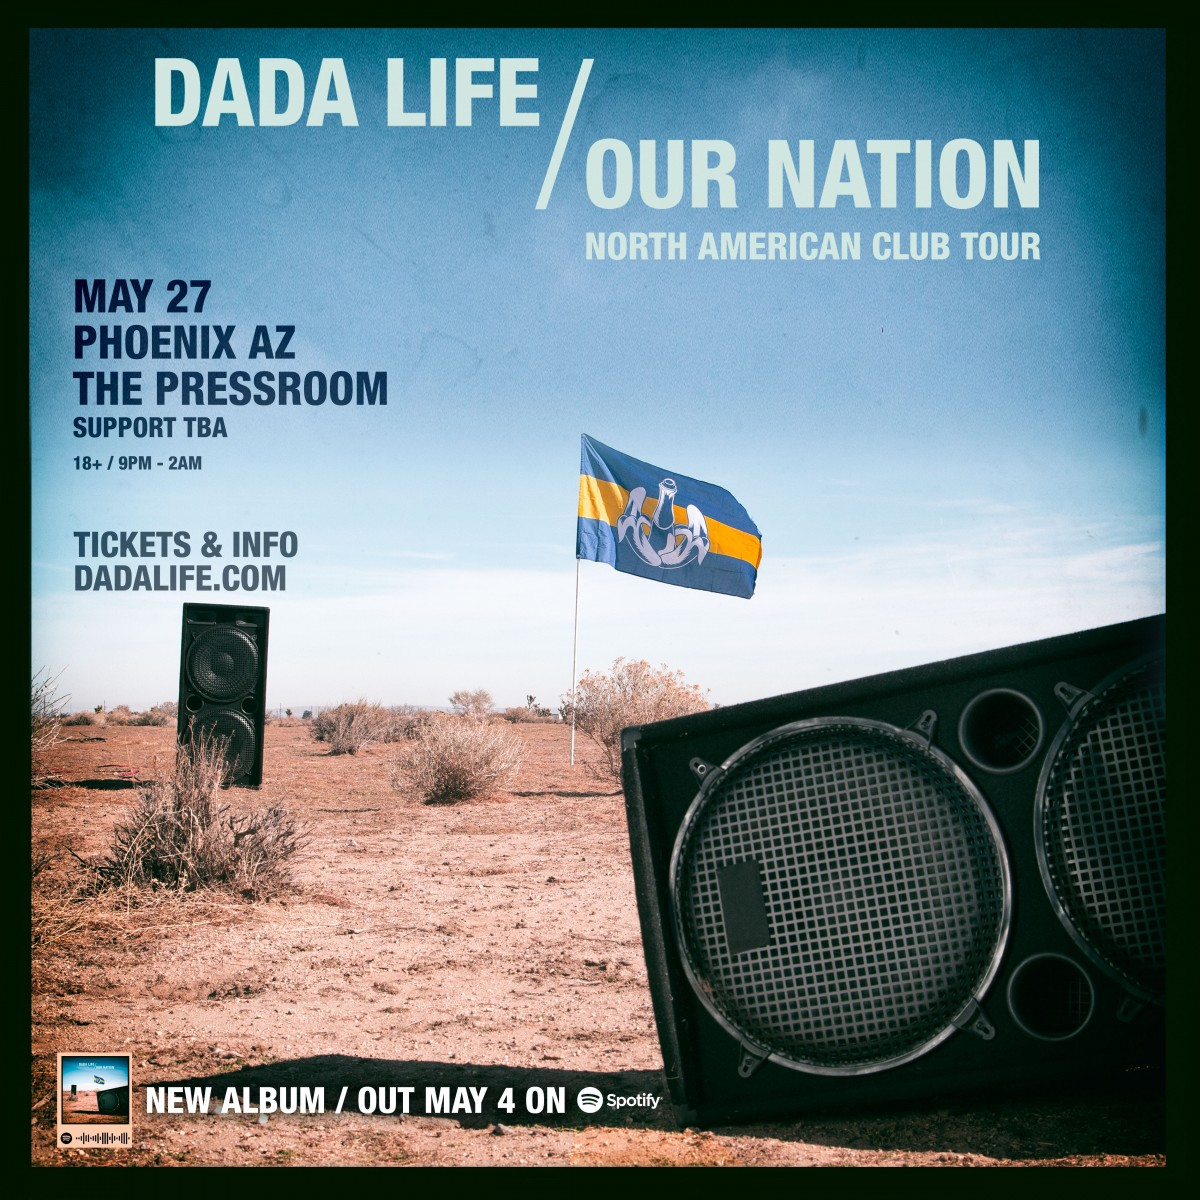 Flyer for Dada Life